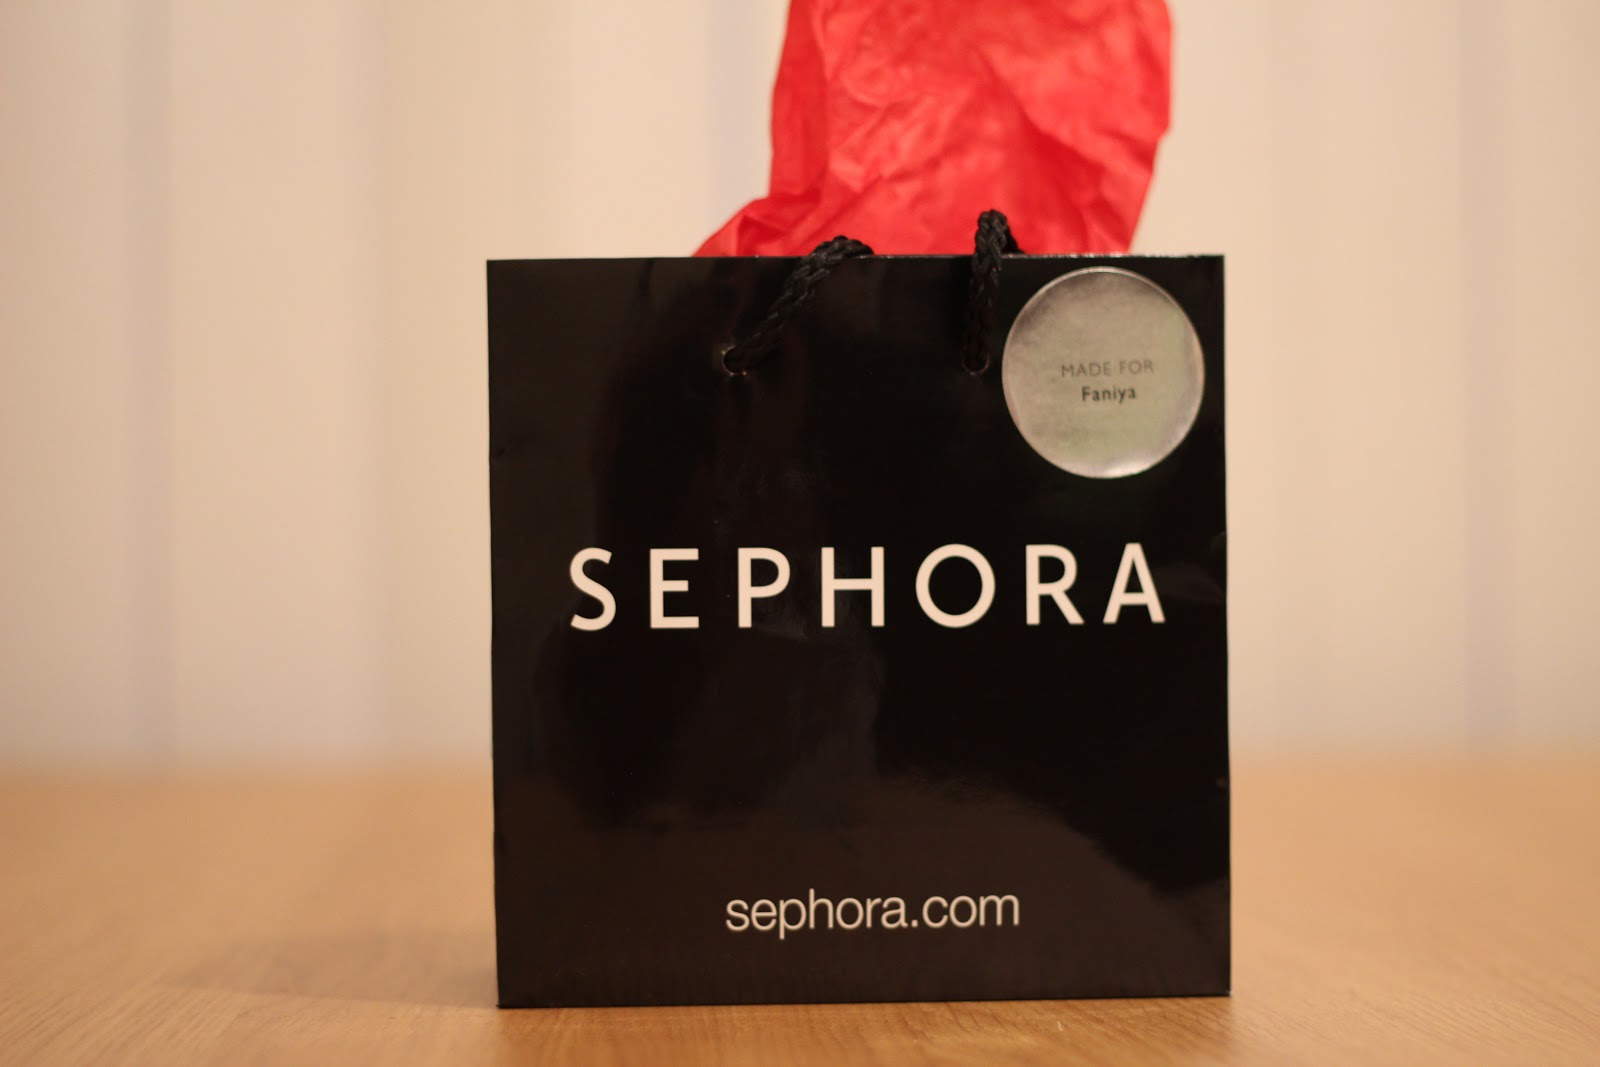 Unique Wedding Gifts In Calgary : received a personalized gift bag with Sephora gift card in a pretty ...